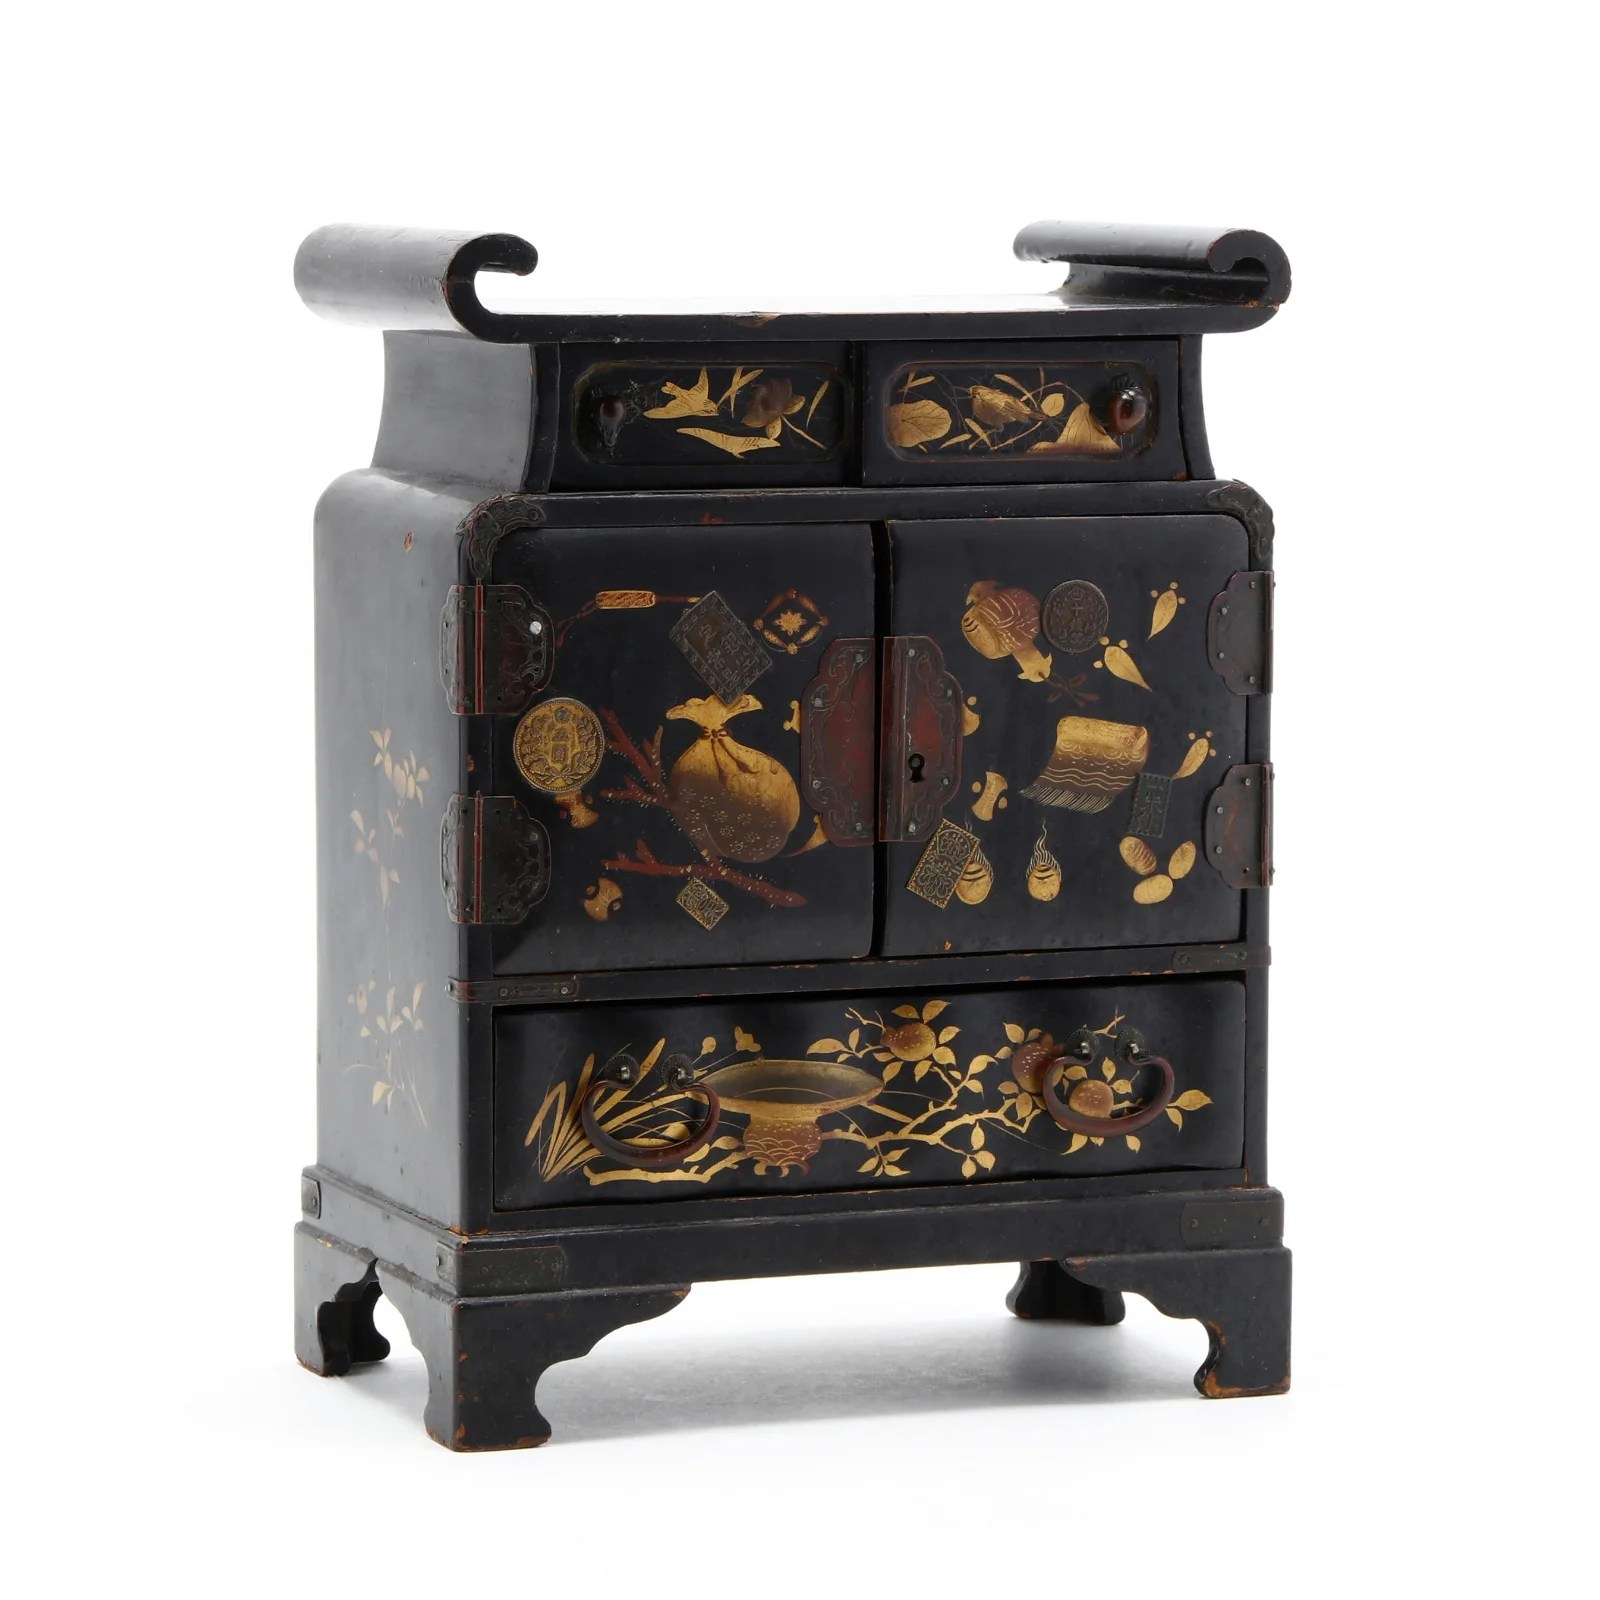 A Japanese Black Lacquered Table Chest